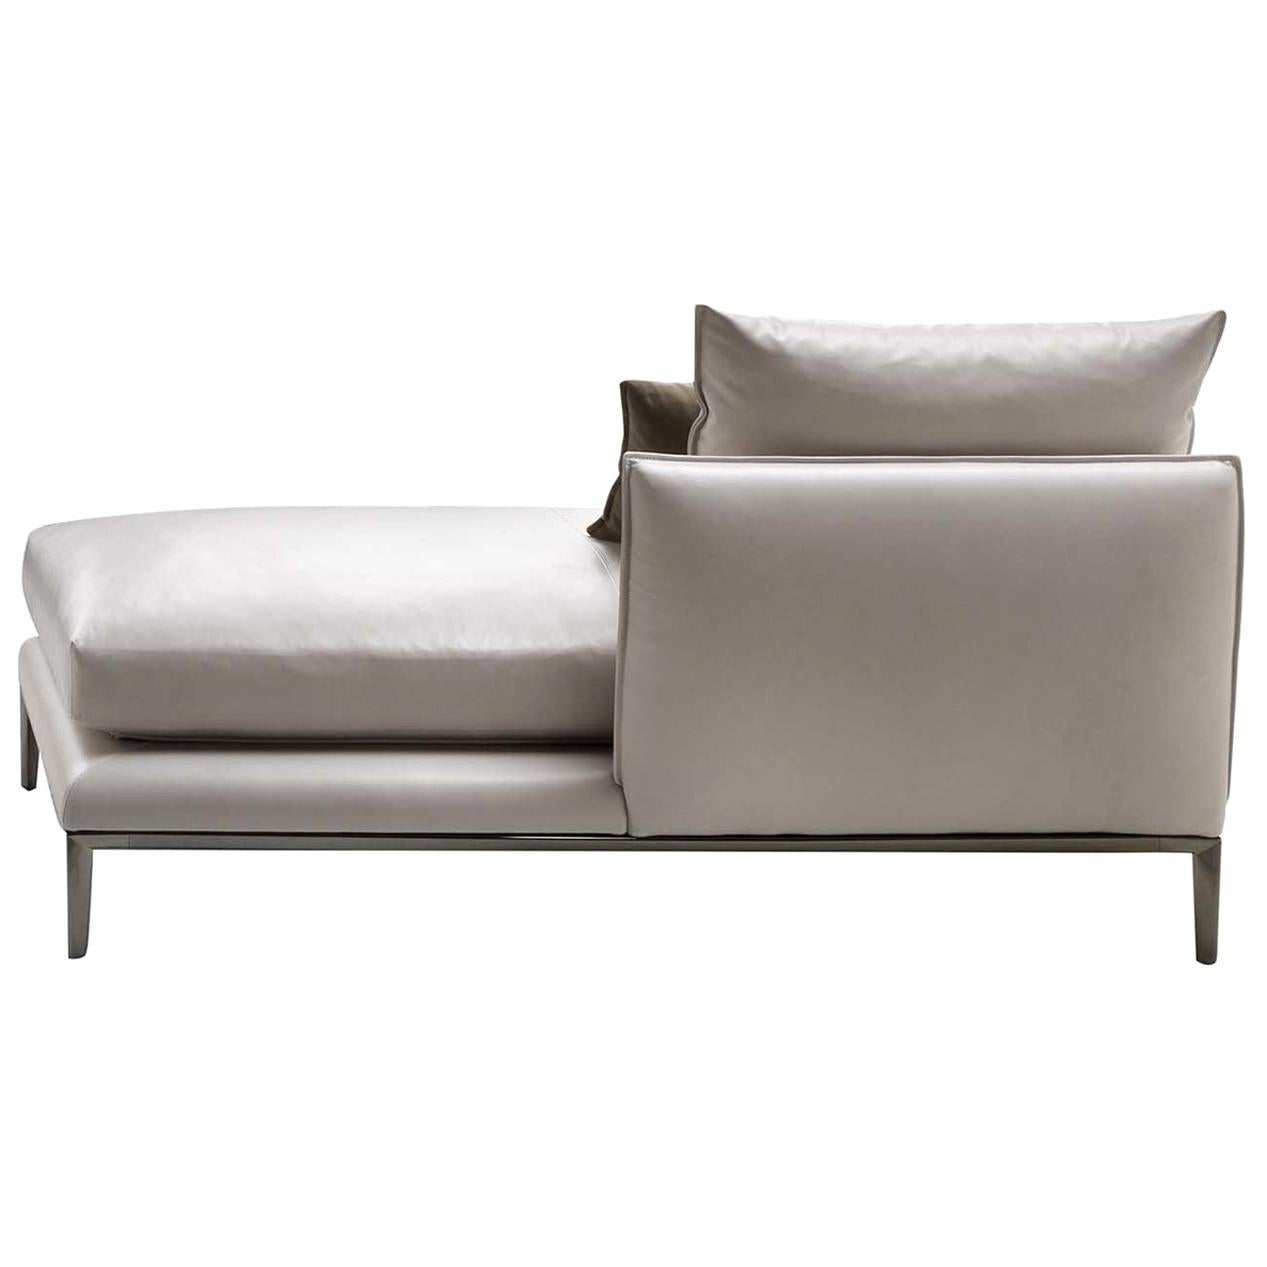 Oliver Leather Chaise Longue